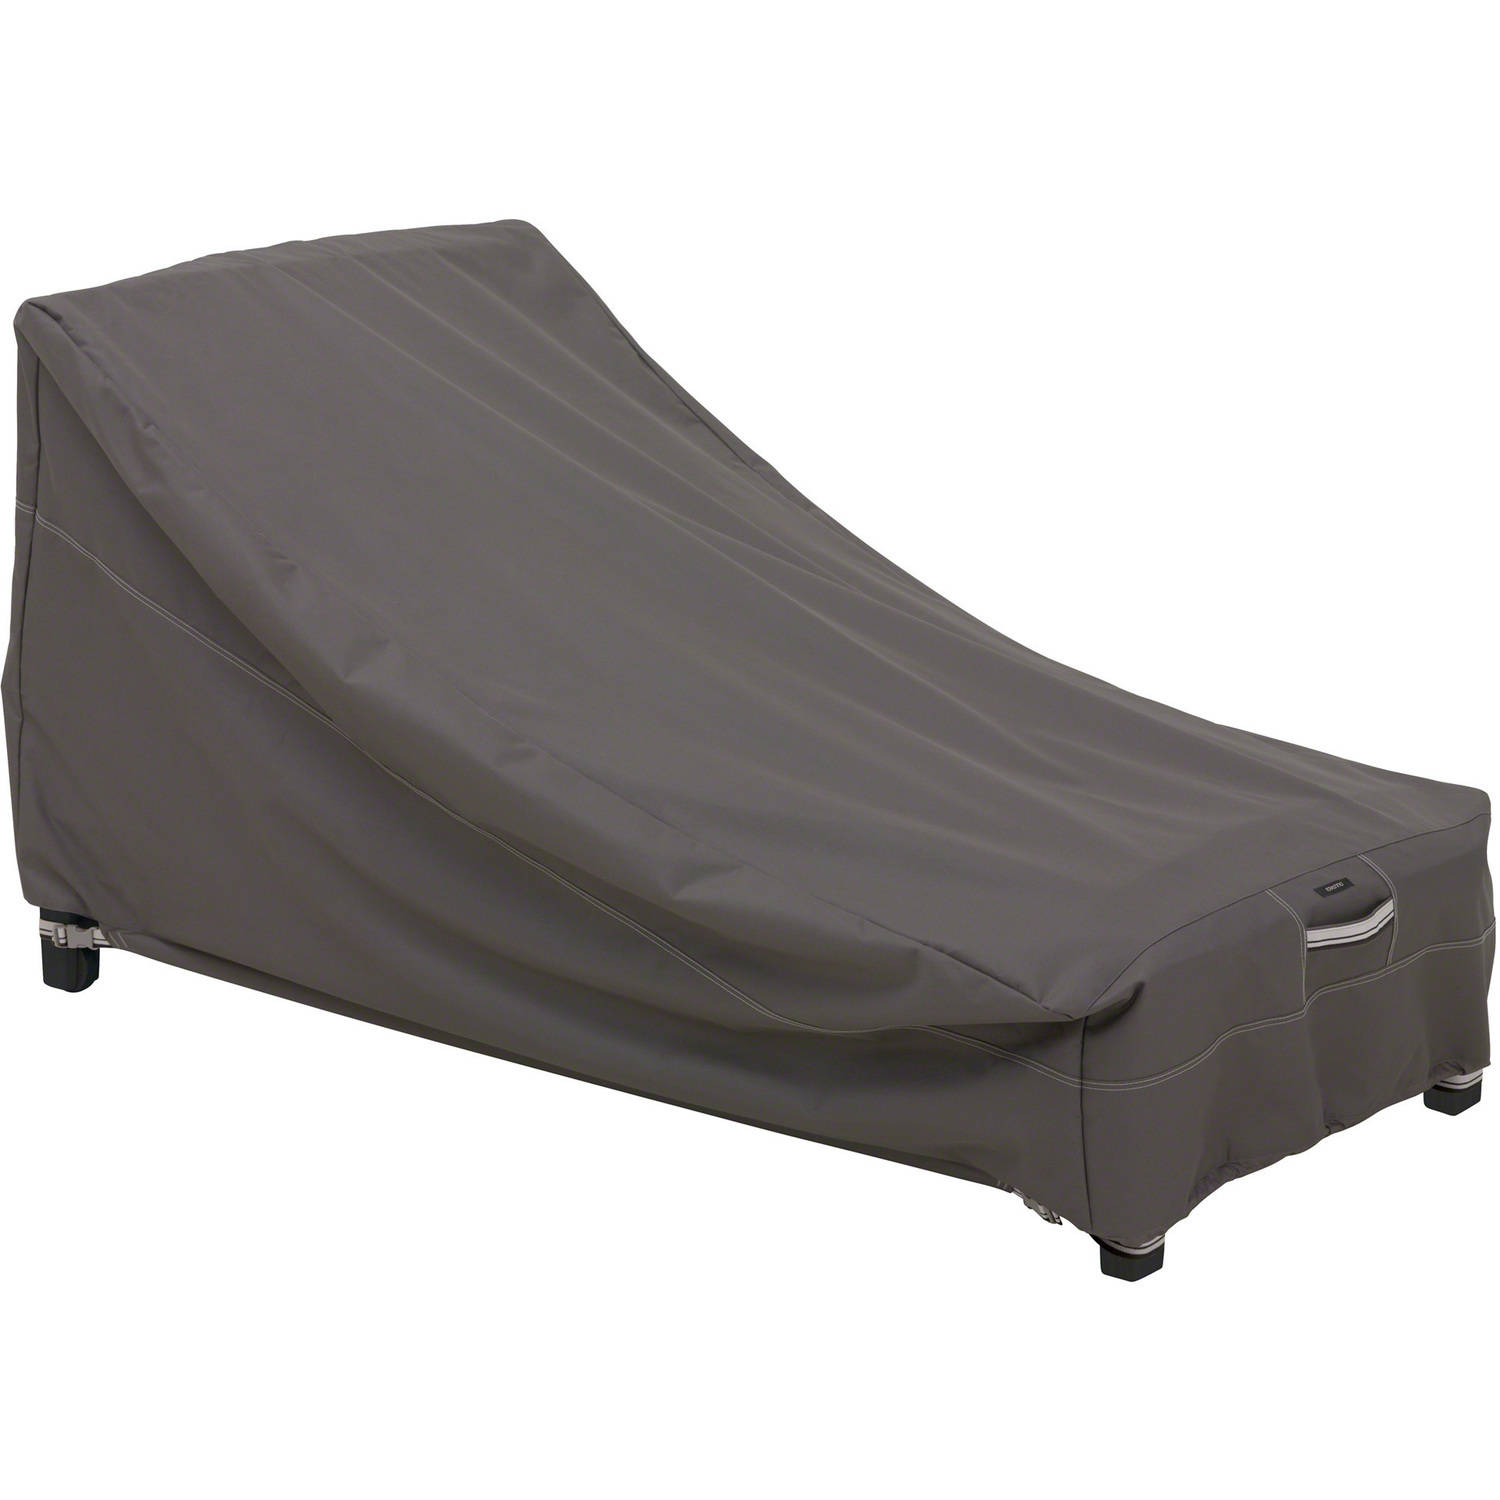 "Ravenna Patio Day Chaise Furniture Storage Cover, Fits Chaise Chairs 78""L x 35.5""W"